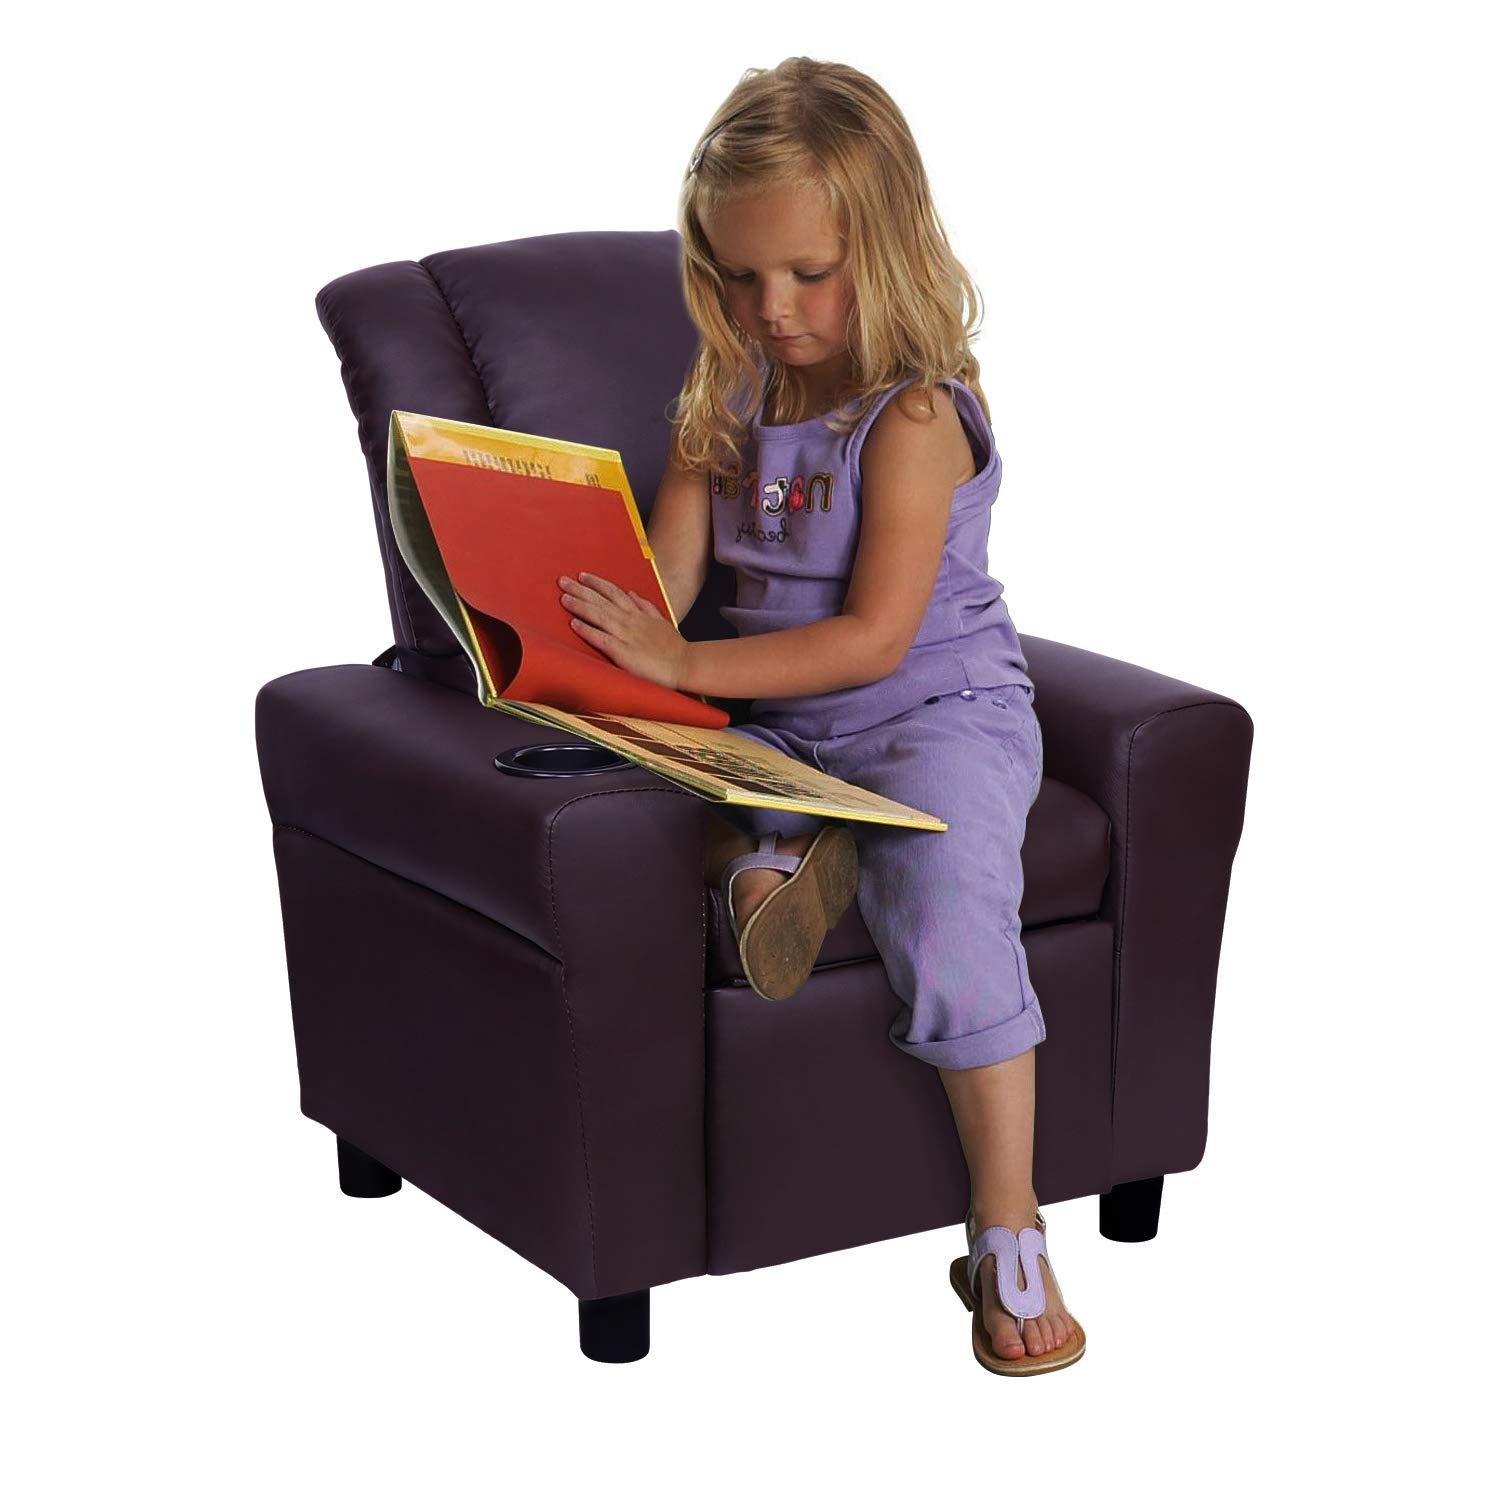 Windaze Children Recliner for Little Boys Girls Small Sofa Chair with Cup Holder Soft Headrest for Boys Girls,Brown by windaze